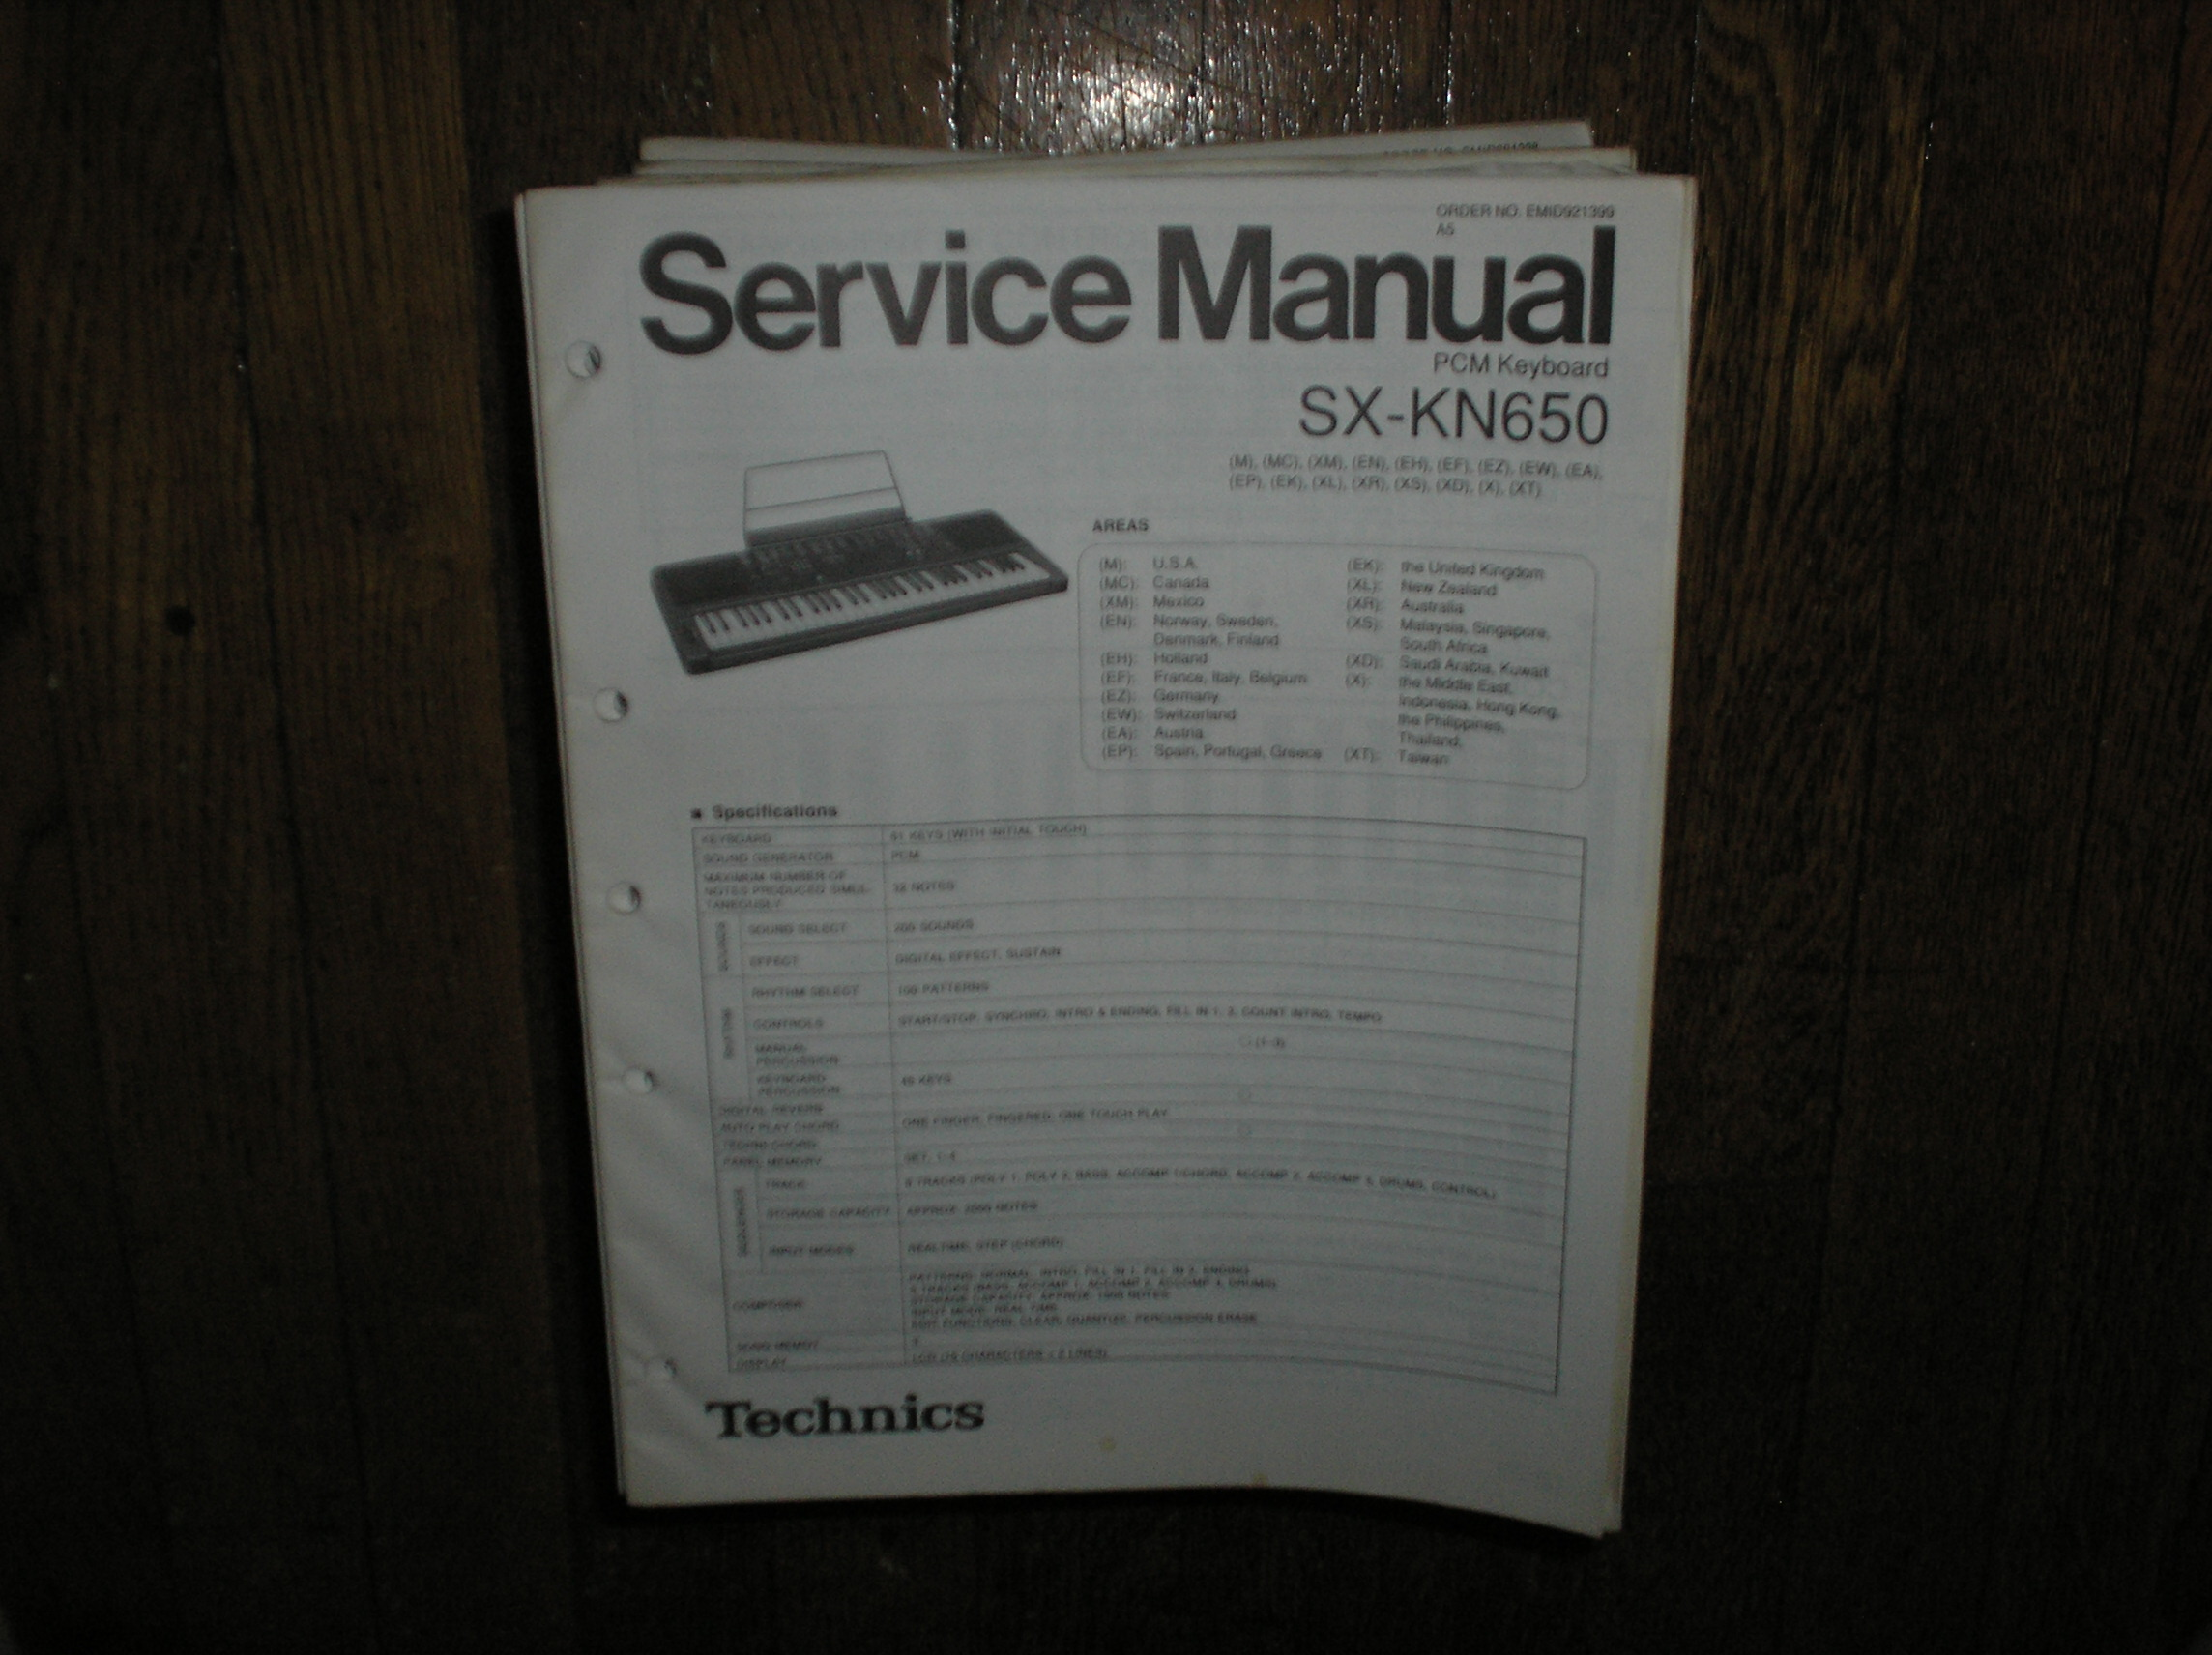 SX-KN650 PCM Keyboard Service Manual